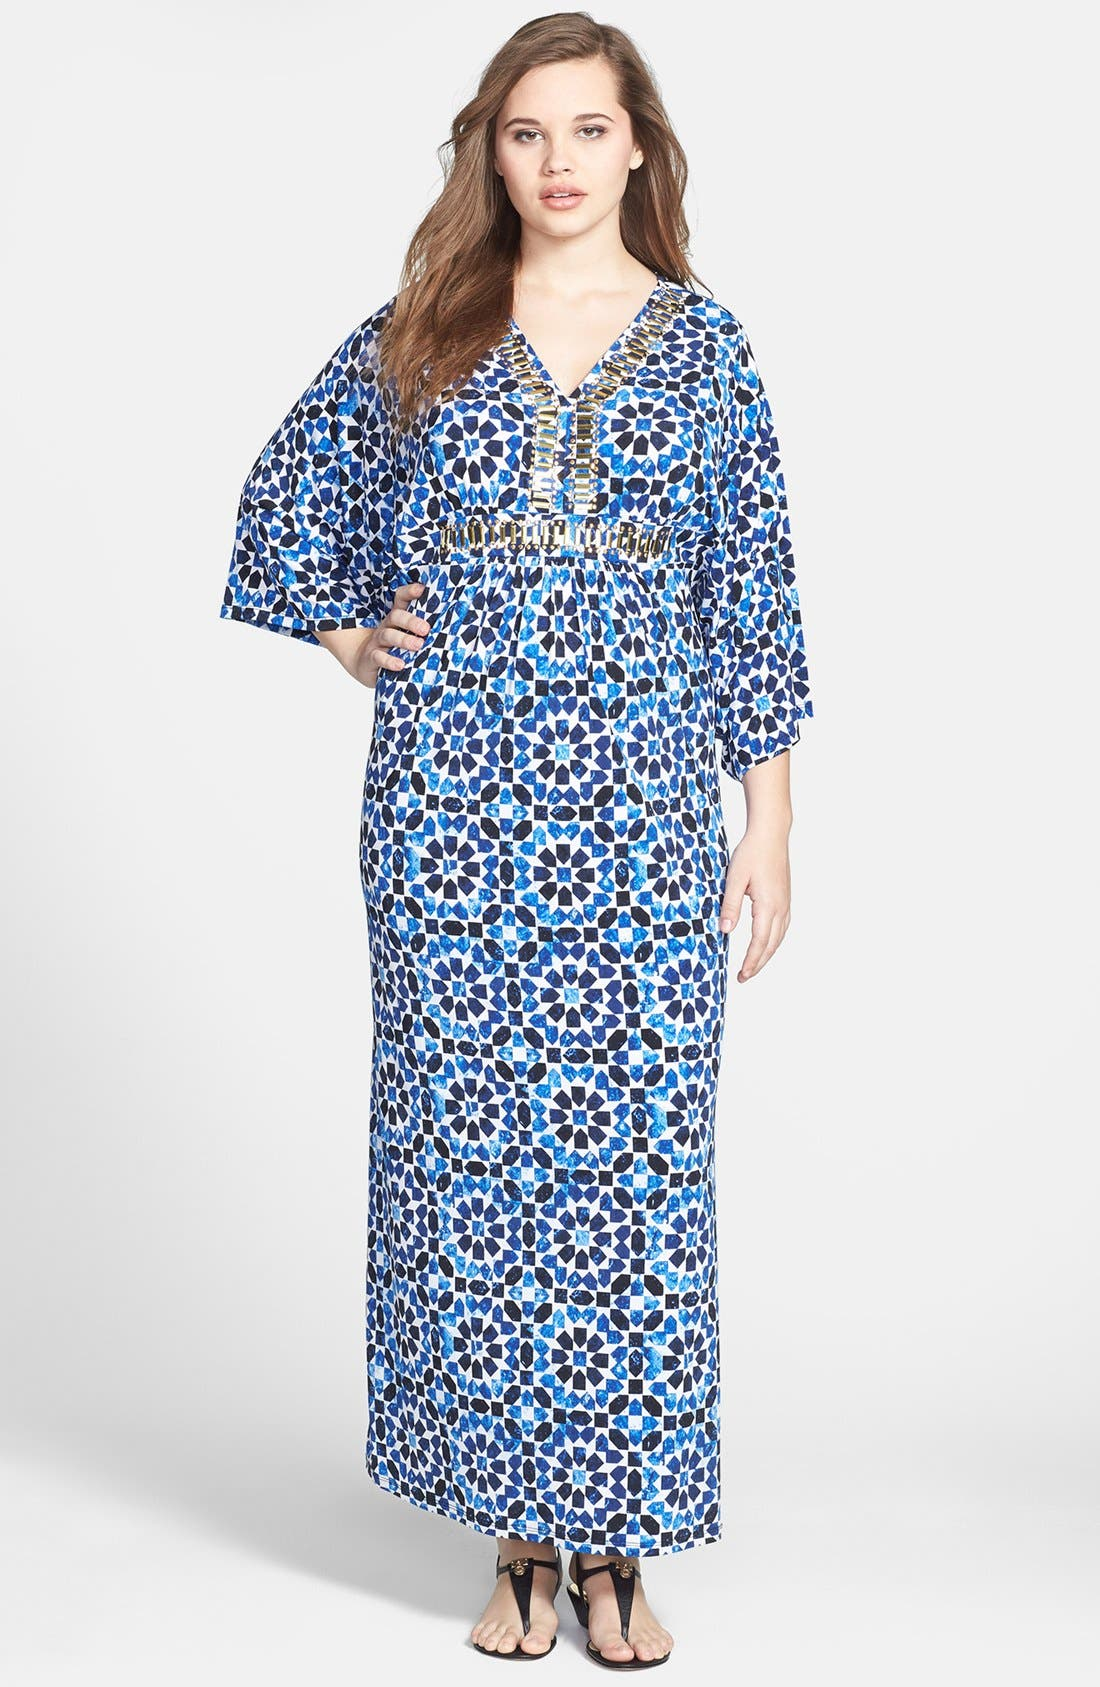 Alternate Image 1 Selected - MICHAEL Michael Kors Studded Maxi Dress (Plus Size)